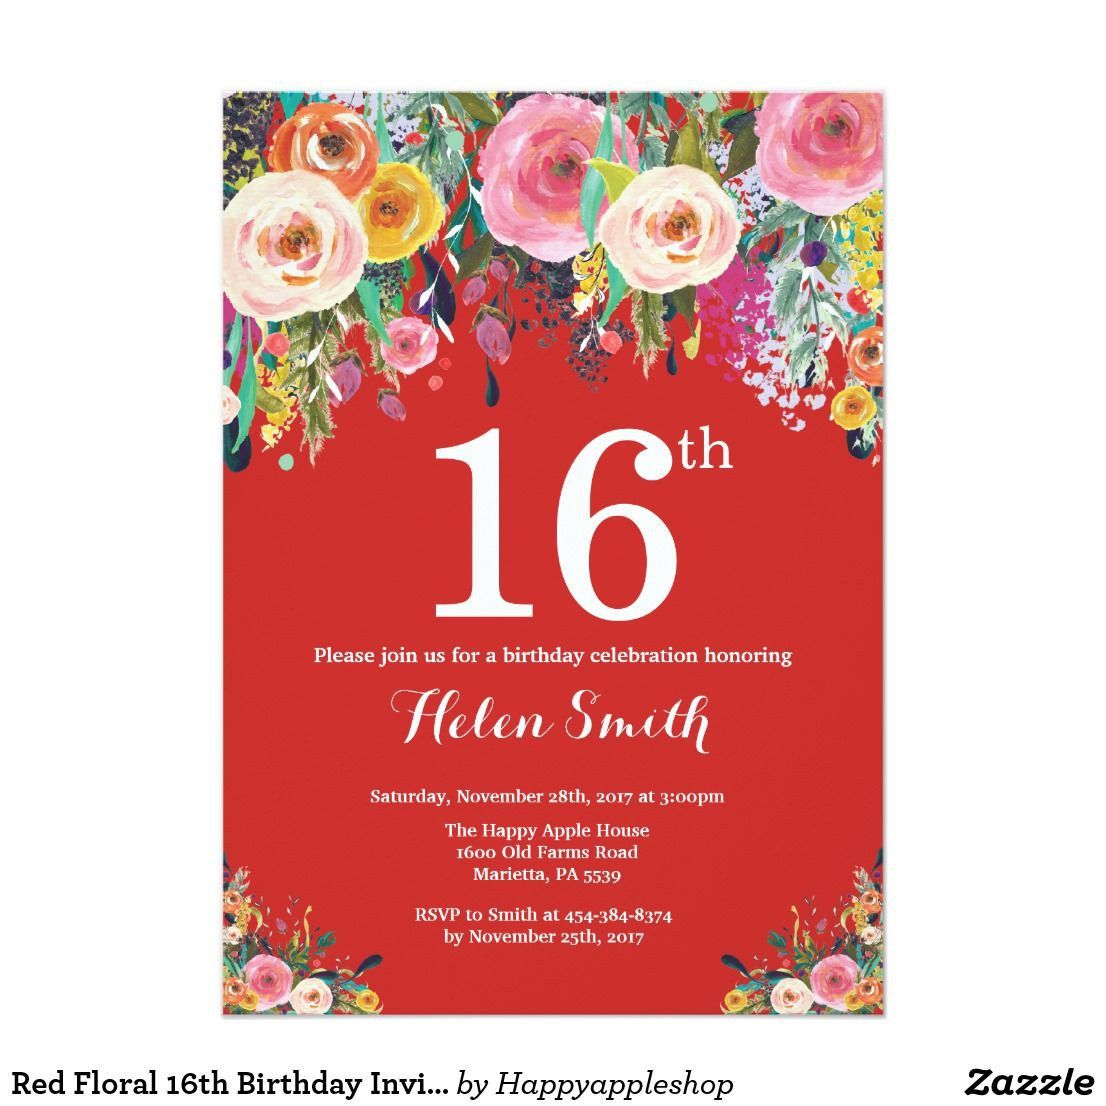 Red Floral 16th Birthday Invitation Zazzle Com 70th Birthday